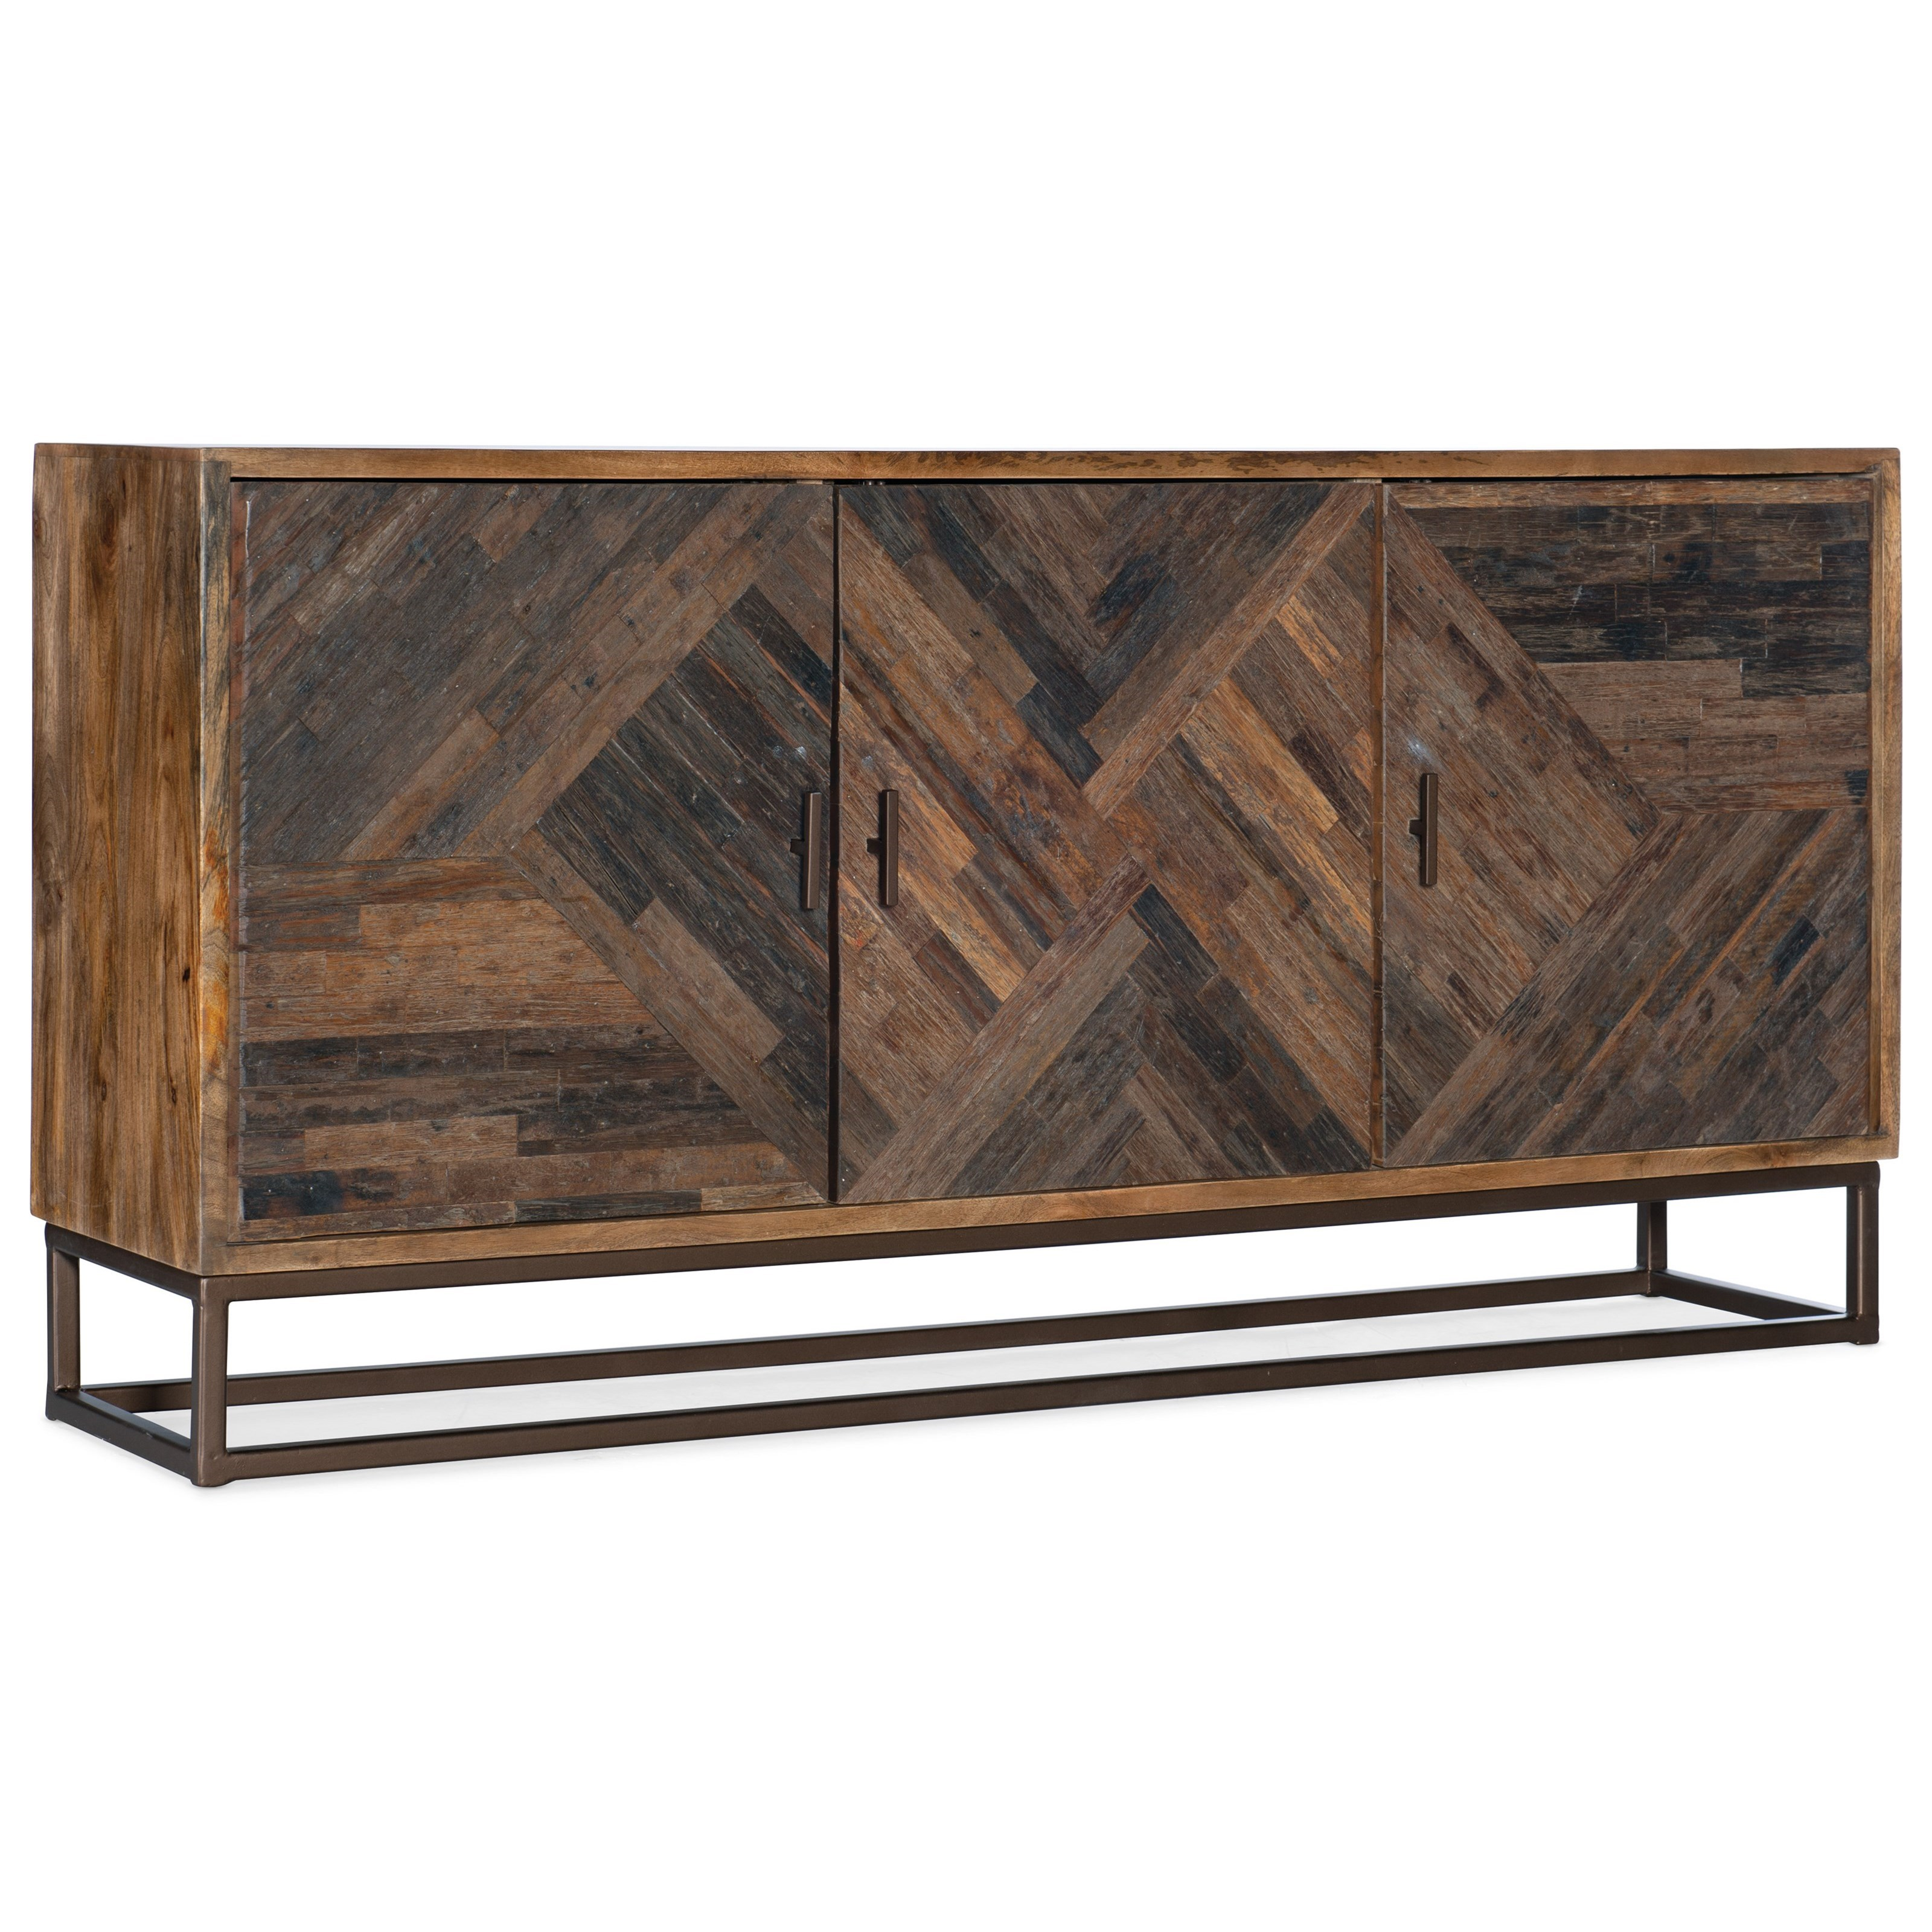 Living Room Accents Entertainment Console by Hooker Furniture at Mueller Furniture